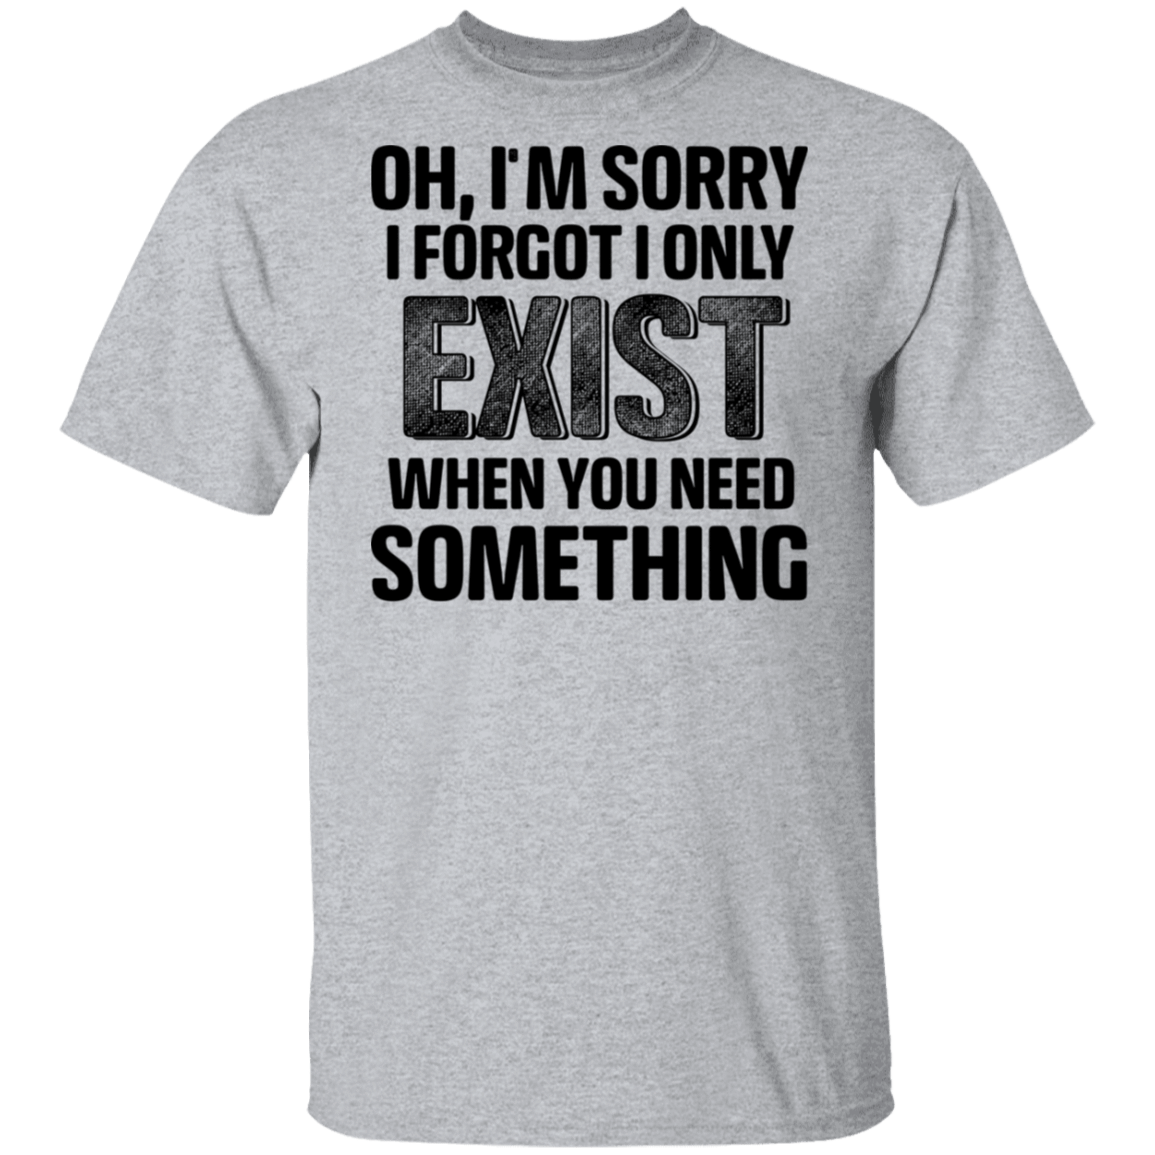 Oh I'm Sorry I Forgot I Only Exist When You Need Something T-Shirts, Hoodies, Tank 1049-9972-80344249-48200 - Tee Ript